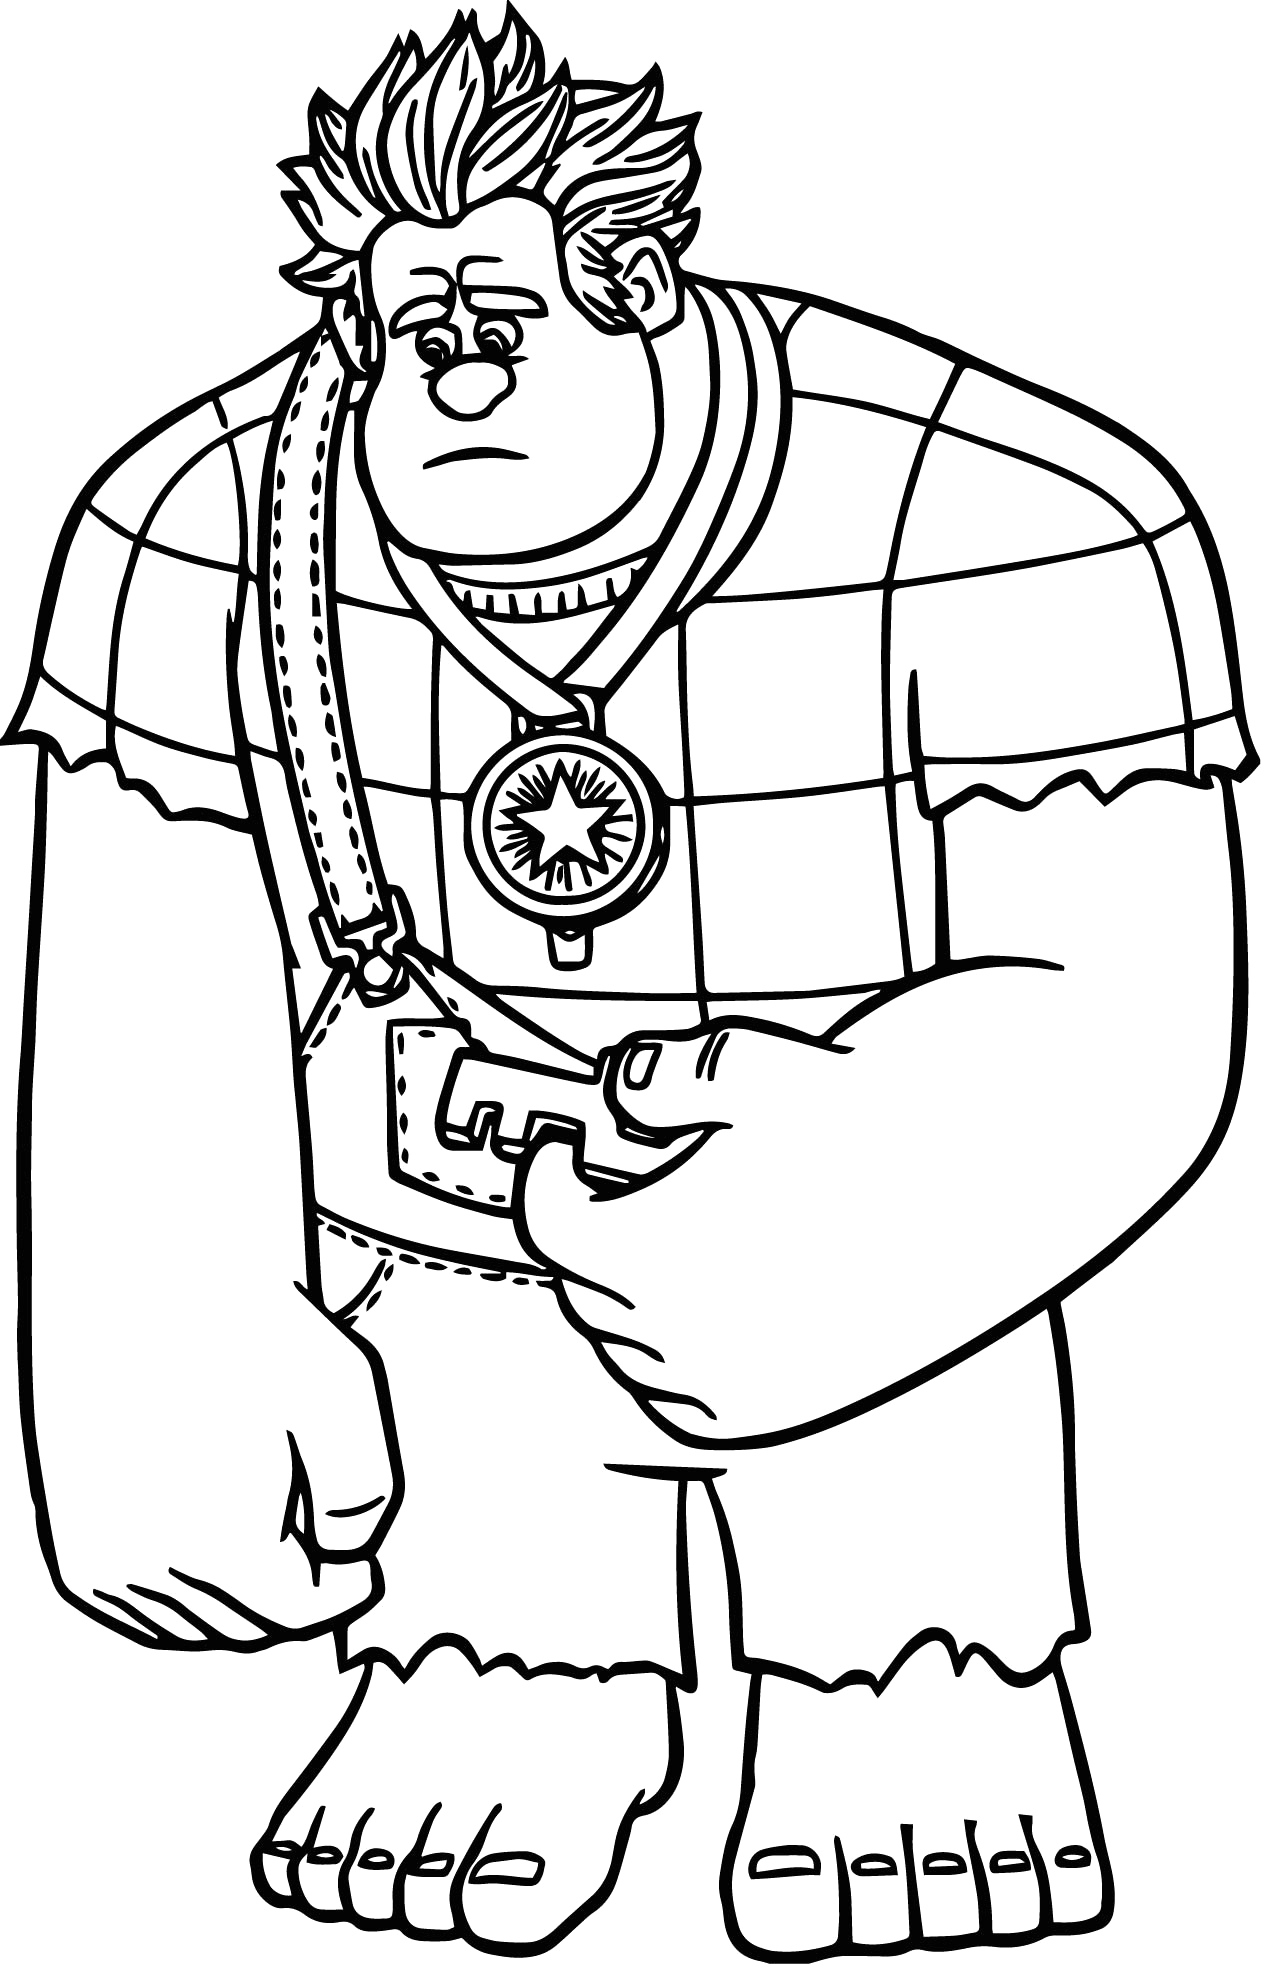 Wreck It Ralph Coloring Pages for Kids Wreck It Ralph Coloring Pages at Getdrawings